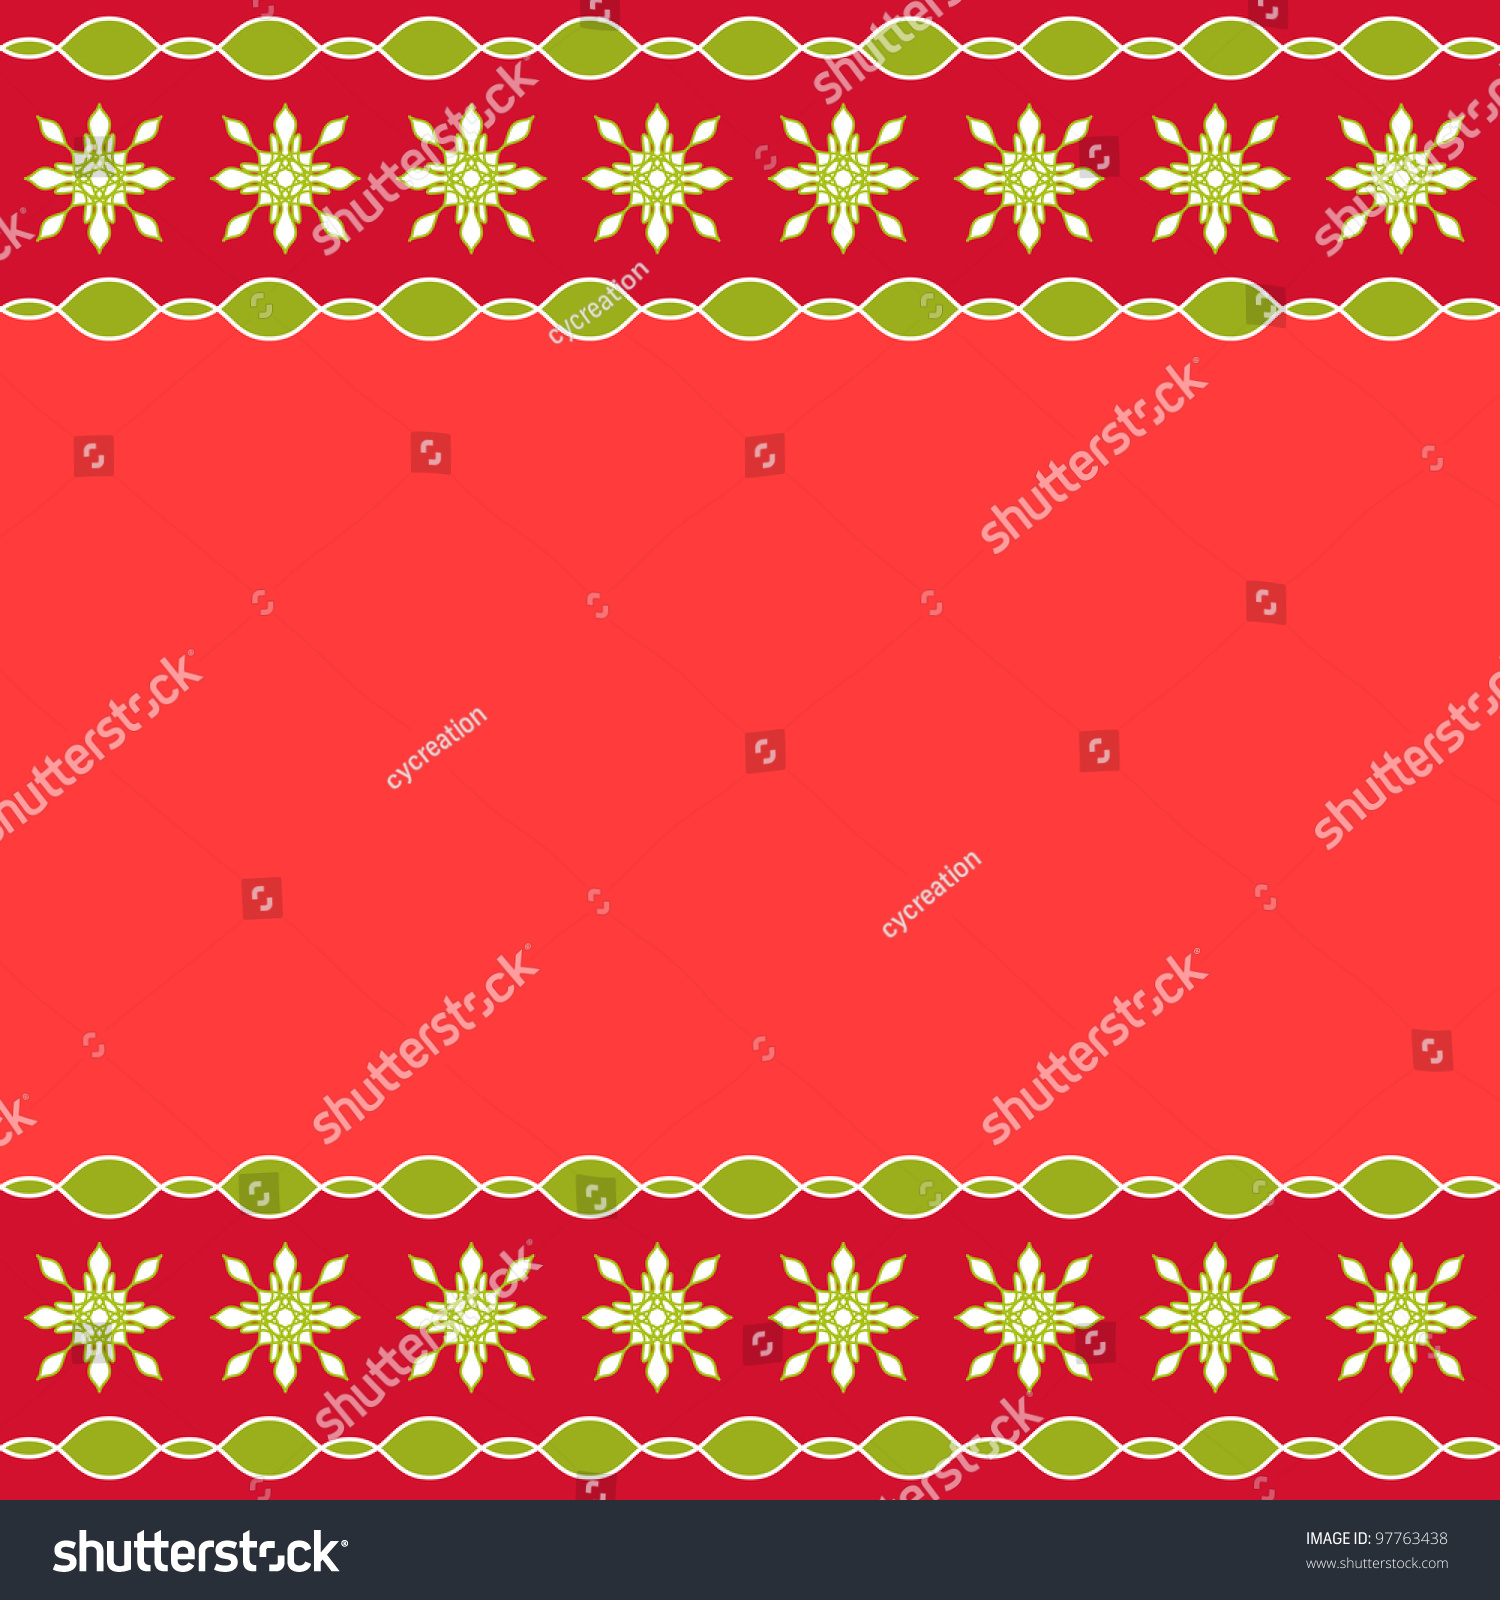 Indian Festival Decoration Indian Festival Decoration Design Stock Illustration 97763438